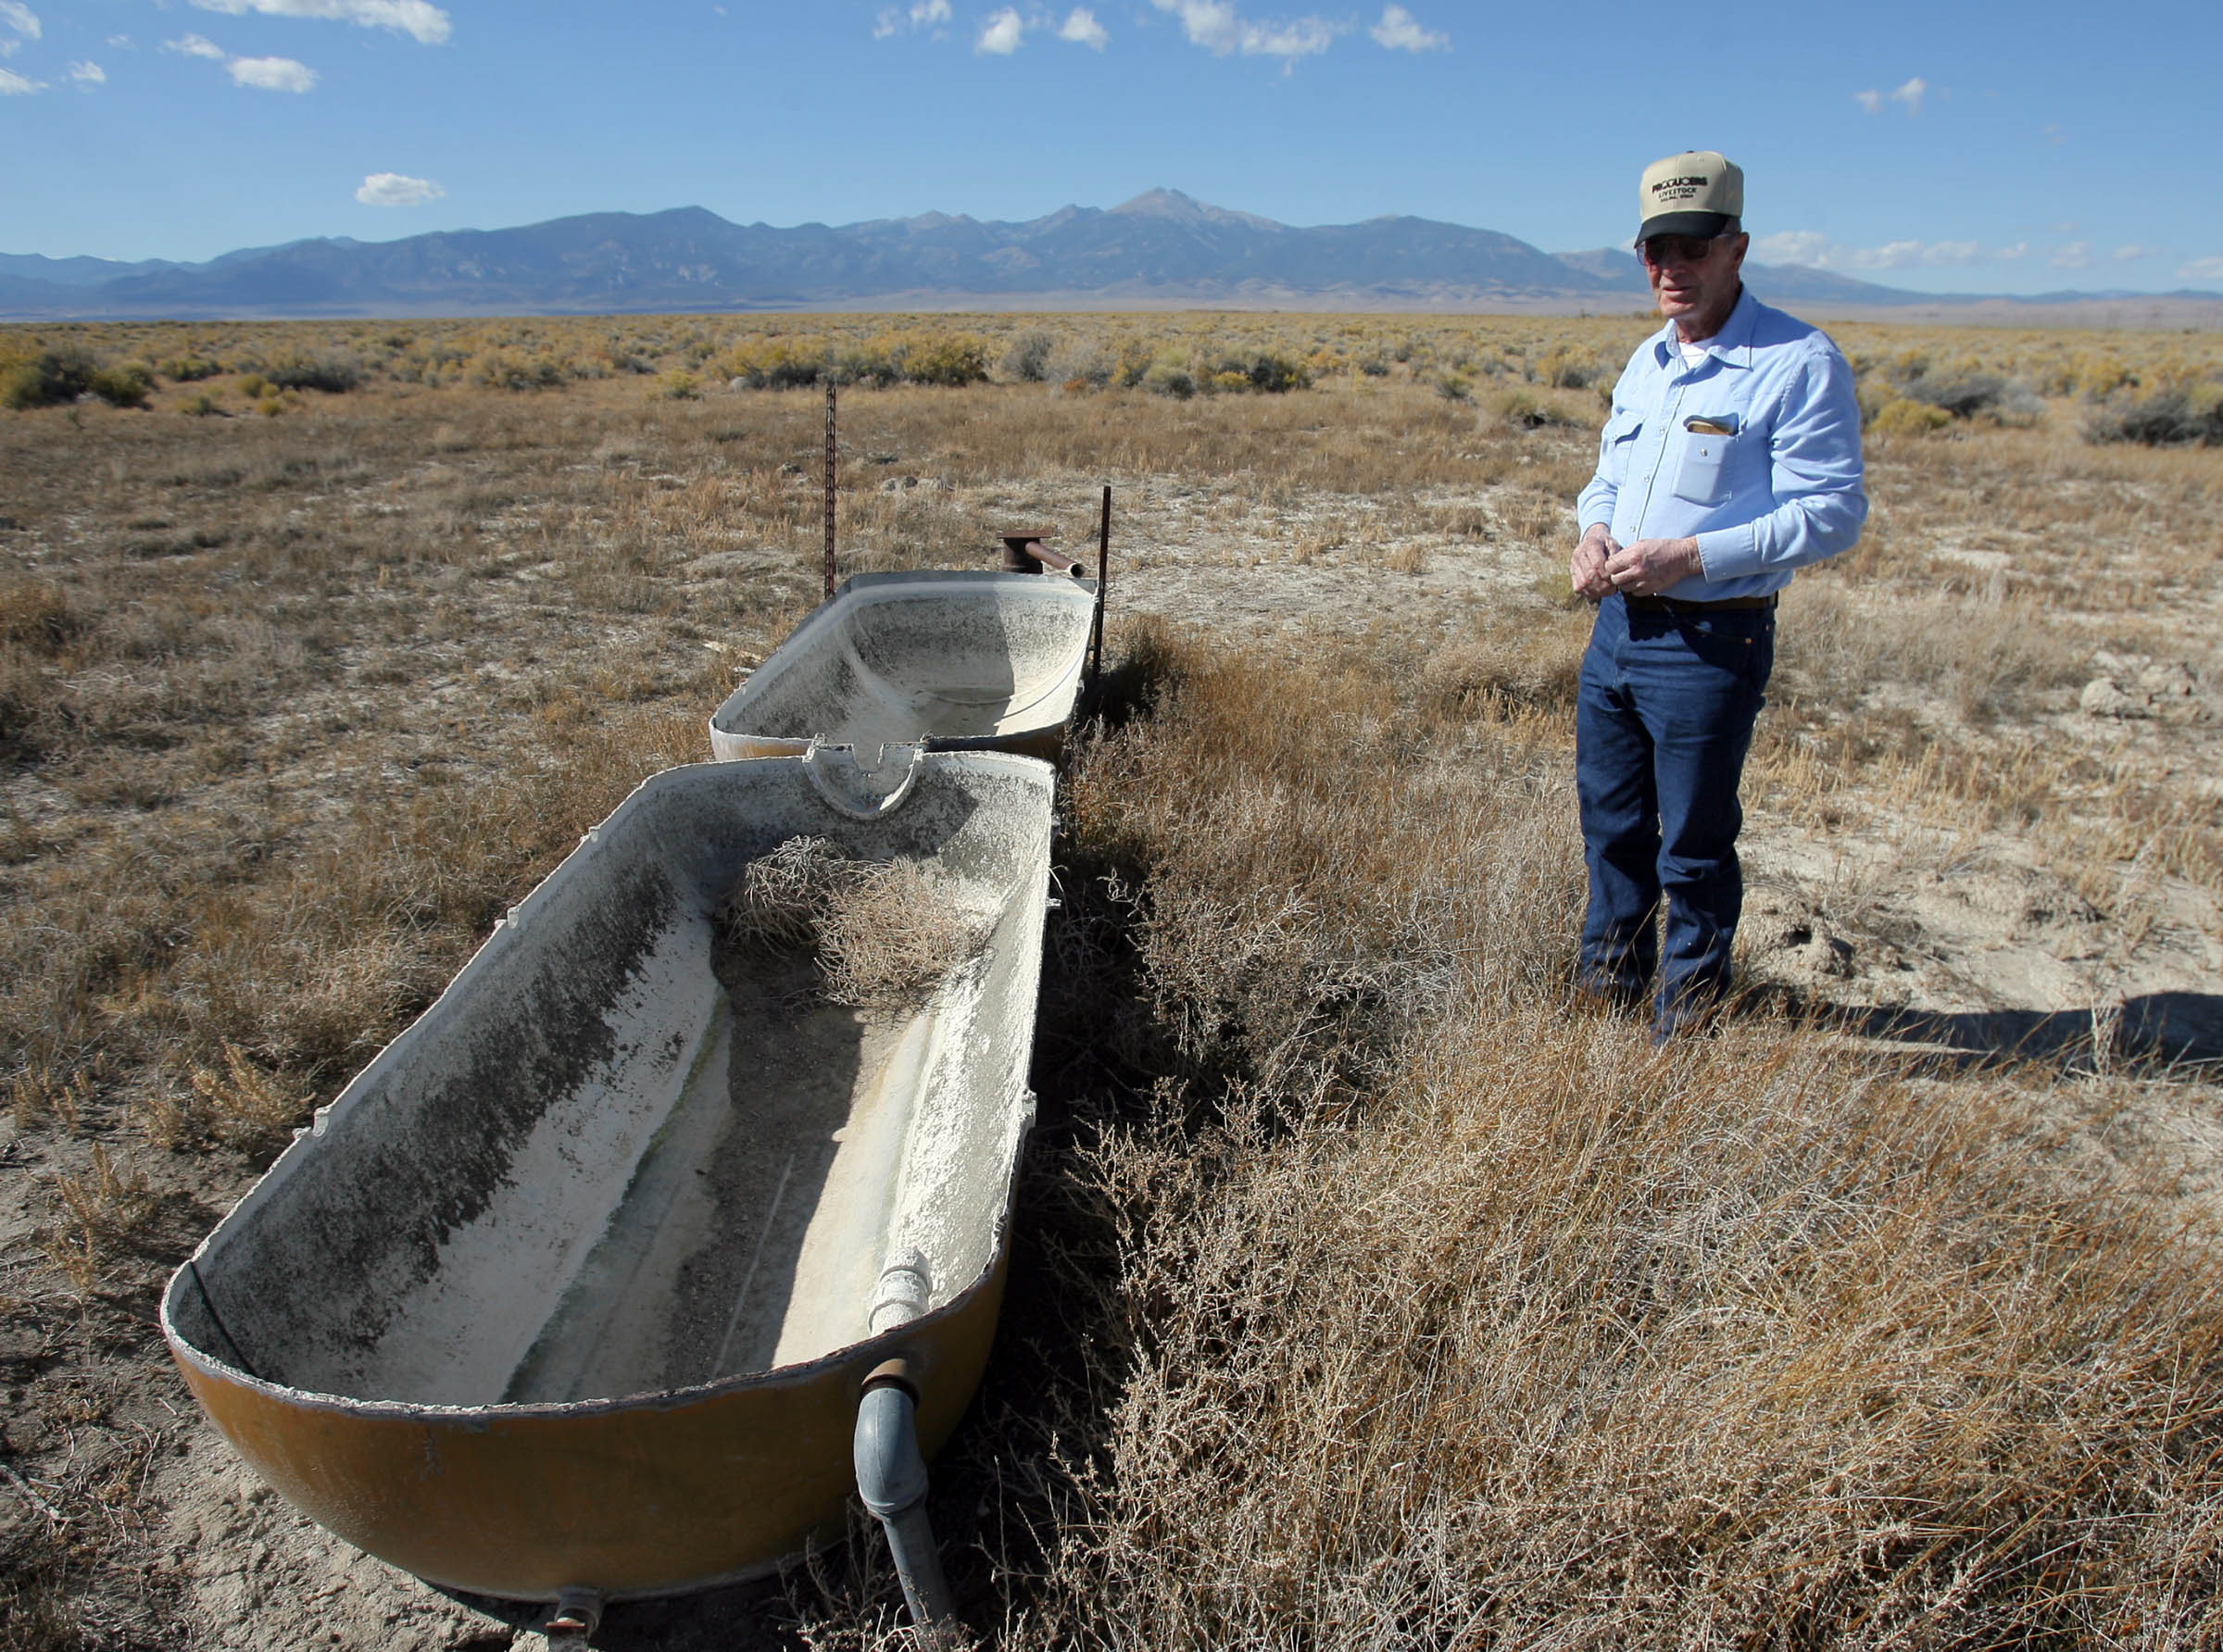 Rancher Dean Baker, a member of the negotiating committee for the Snake Valley aquifer water sharing agreement under consideration by Nevada and Utah officials, stands next to an old trough on the Nevada side of the Snake Valley on Monday, Oct. 19, 2009. The trough was supplied by groundwater until a few years ago.